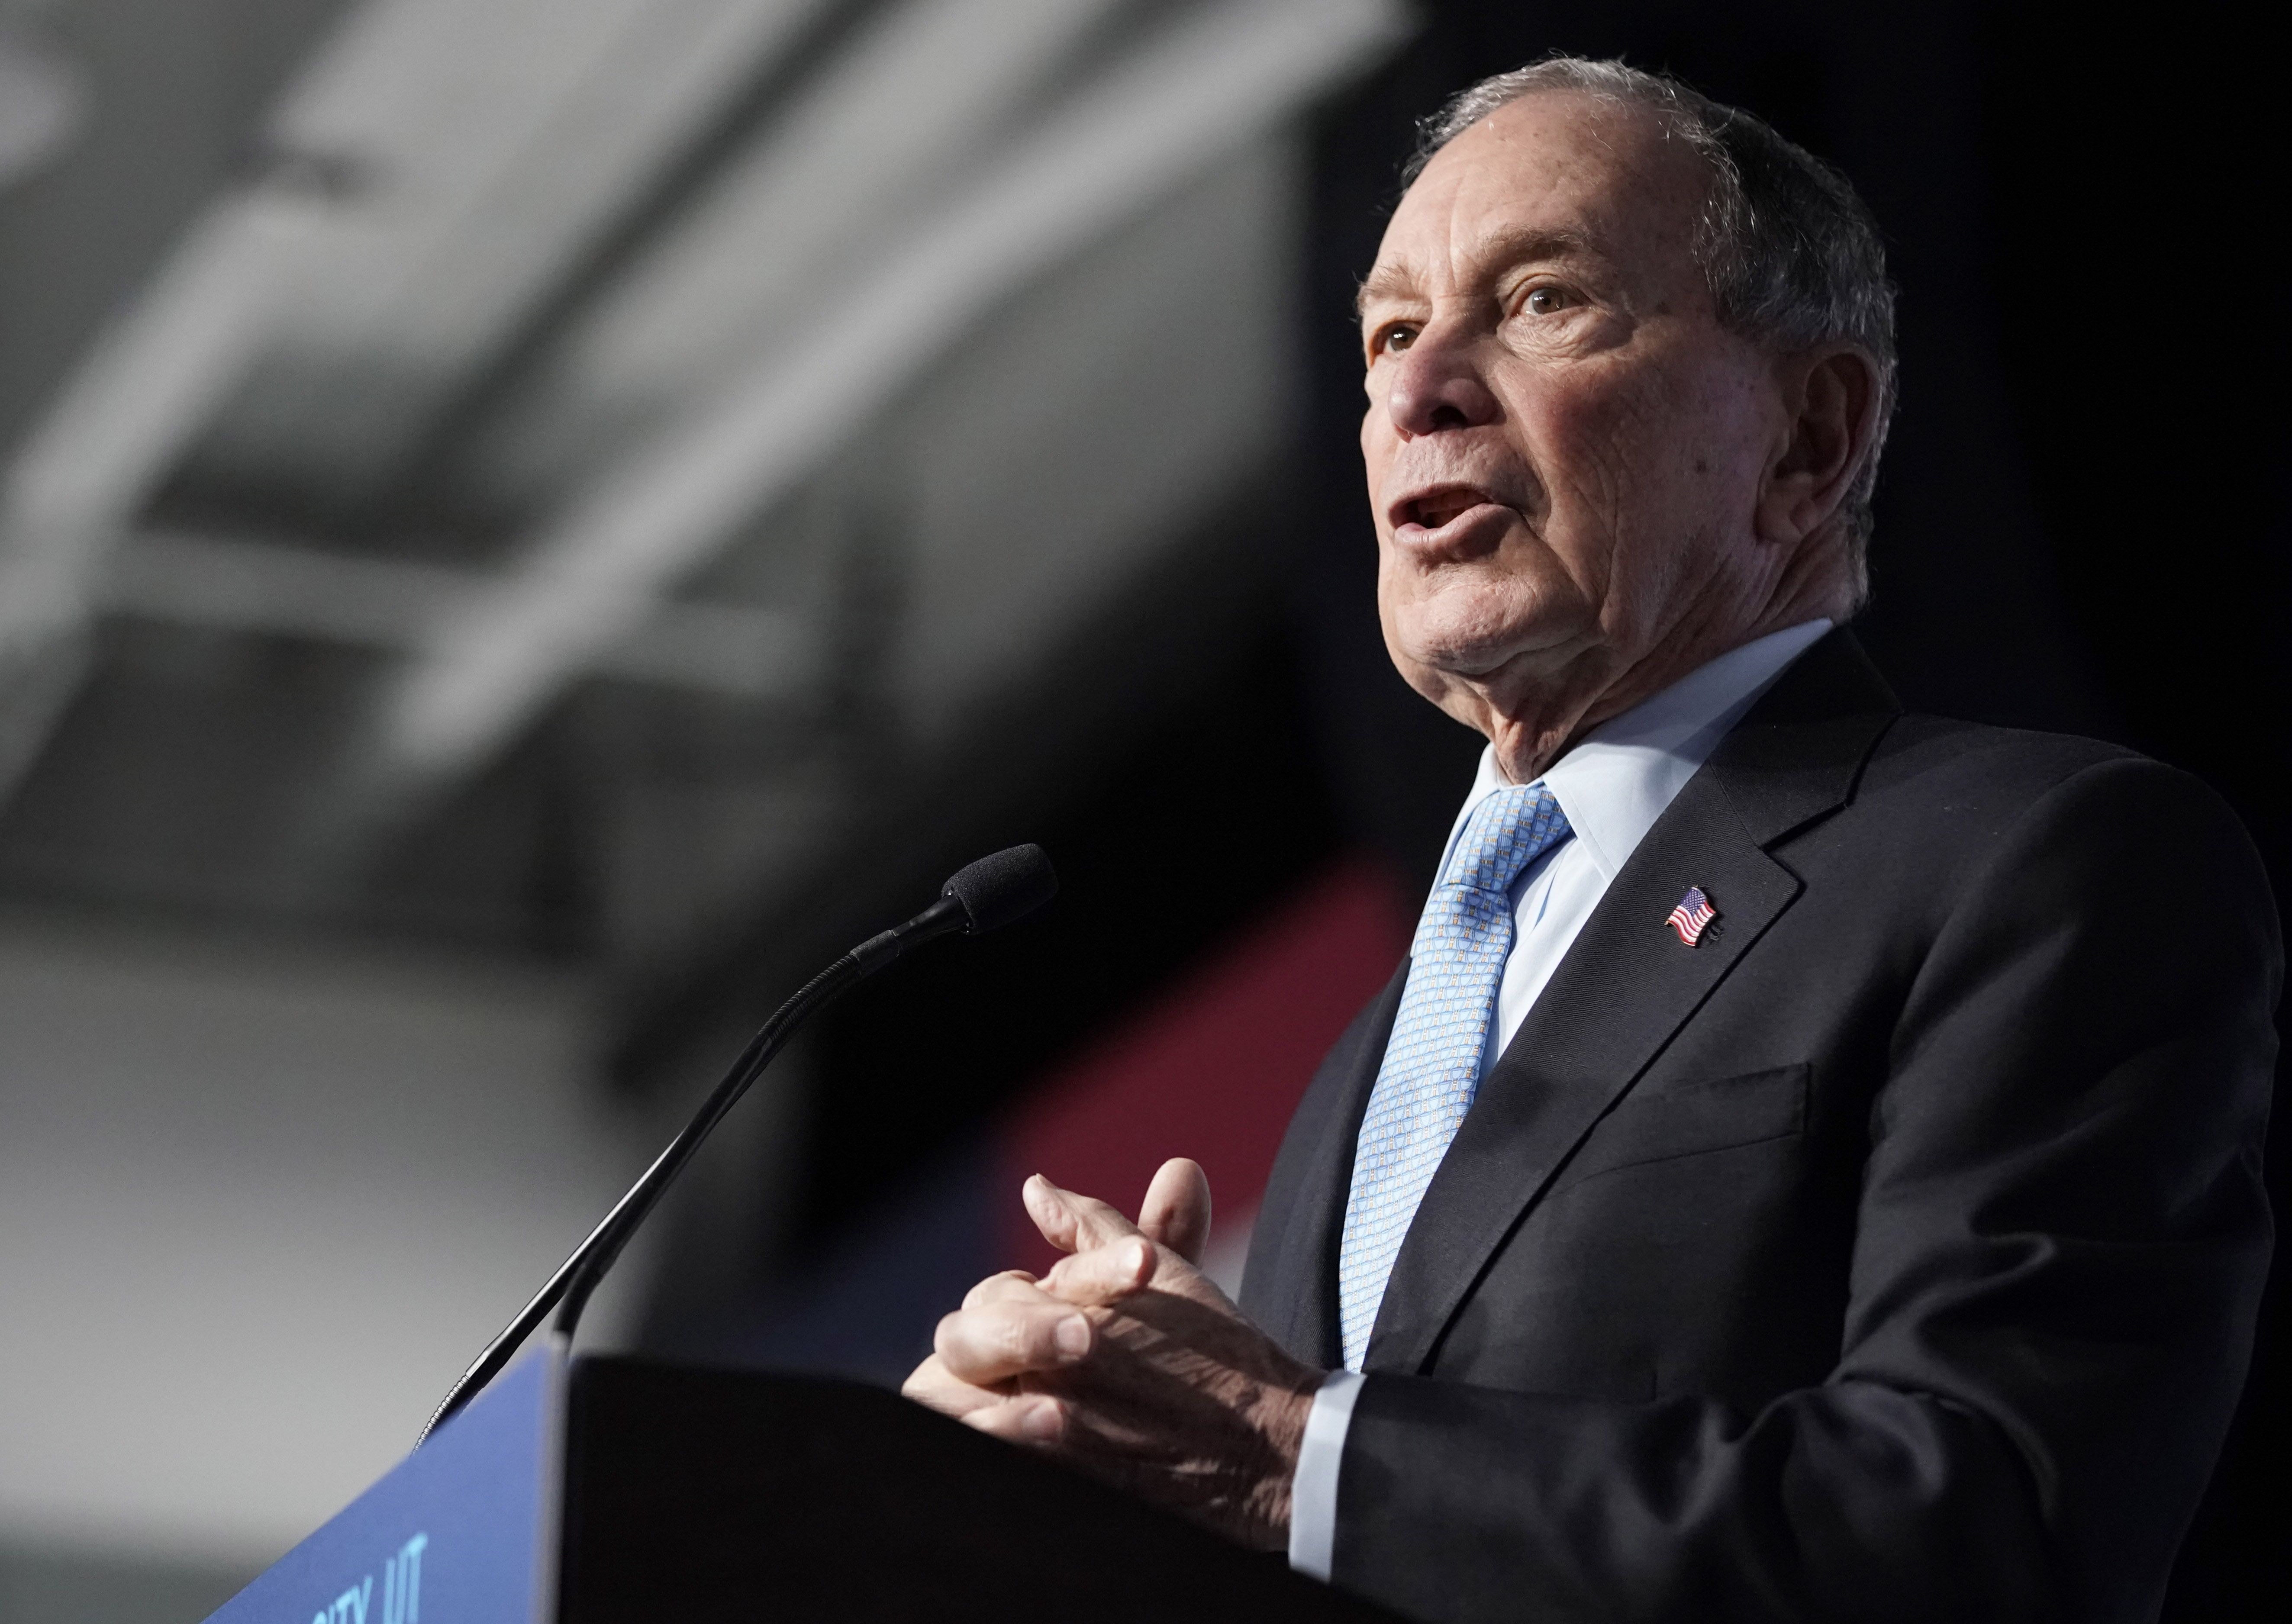 Poll: Bloomberg's support falls 3 points after Nevada debate - Axios